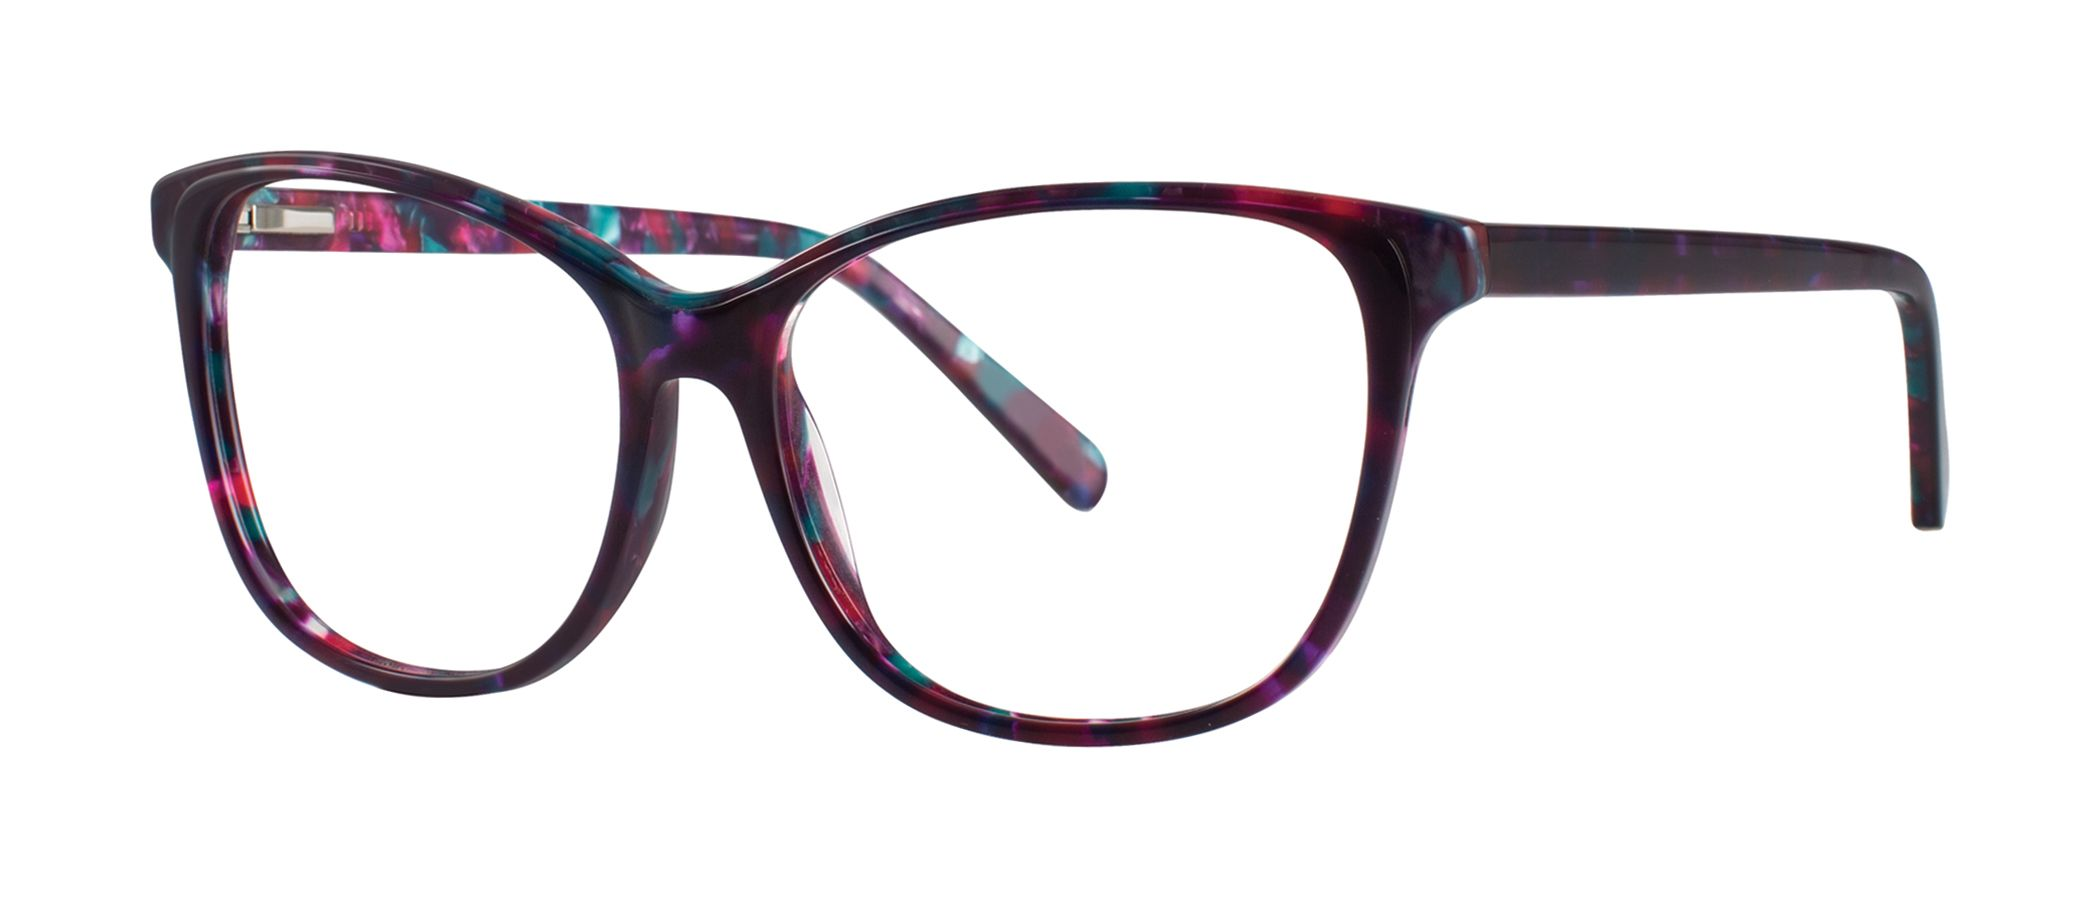 0826f996e8c5 Savvy by GB+ Eyewear. Plus-size eyeglass frames that are beautiful and  affordable. By Modern Optical International.